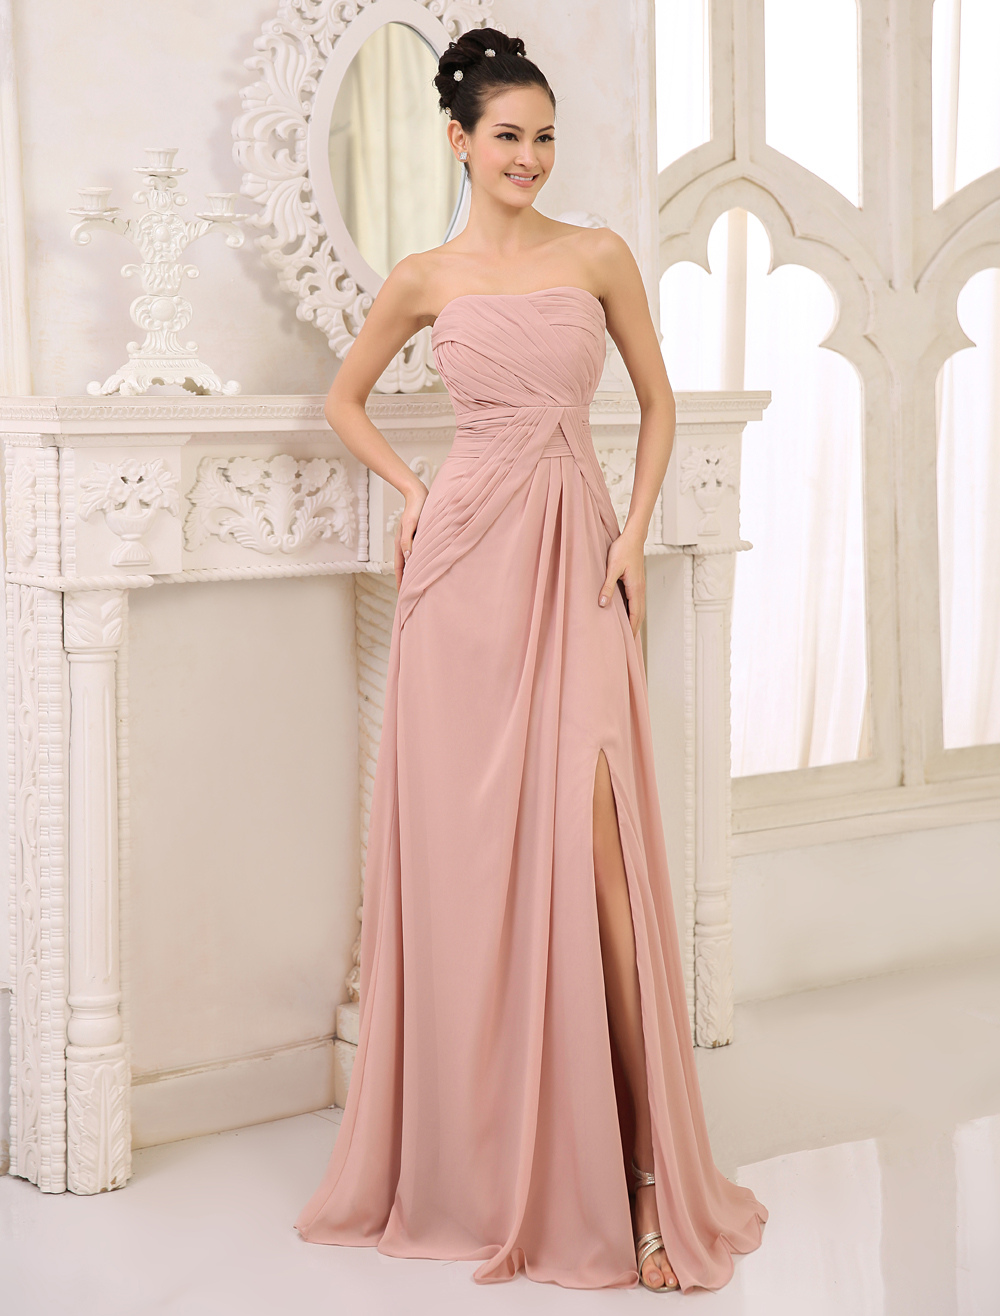 Buy Chiffon Bridesmaid Dress Blush Pink Ruched Prom Dress Strapless Sleeveless High Split Floor Length Wedding Party Dress for $109.24 in Milanoo store